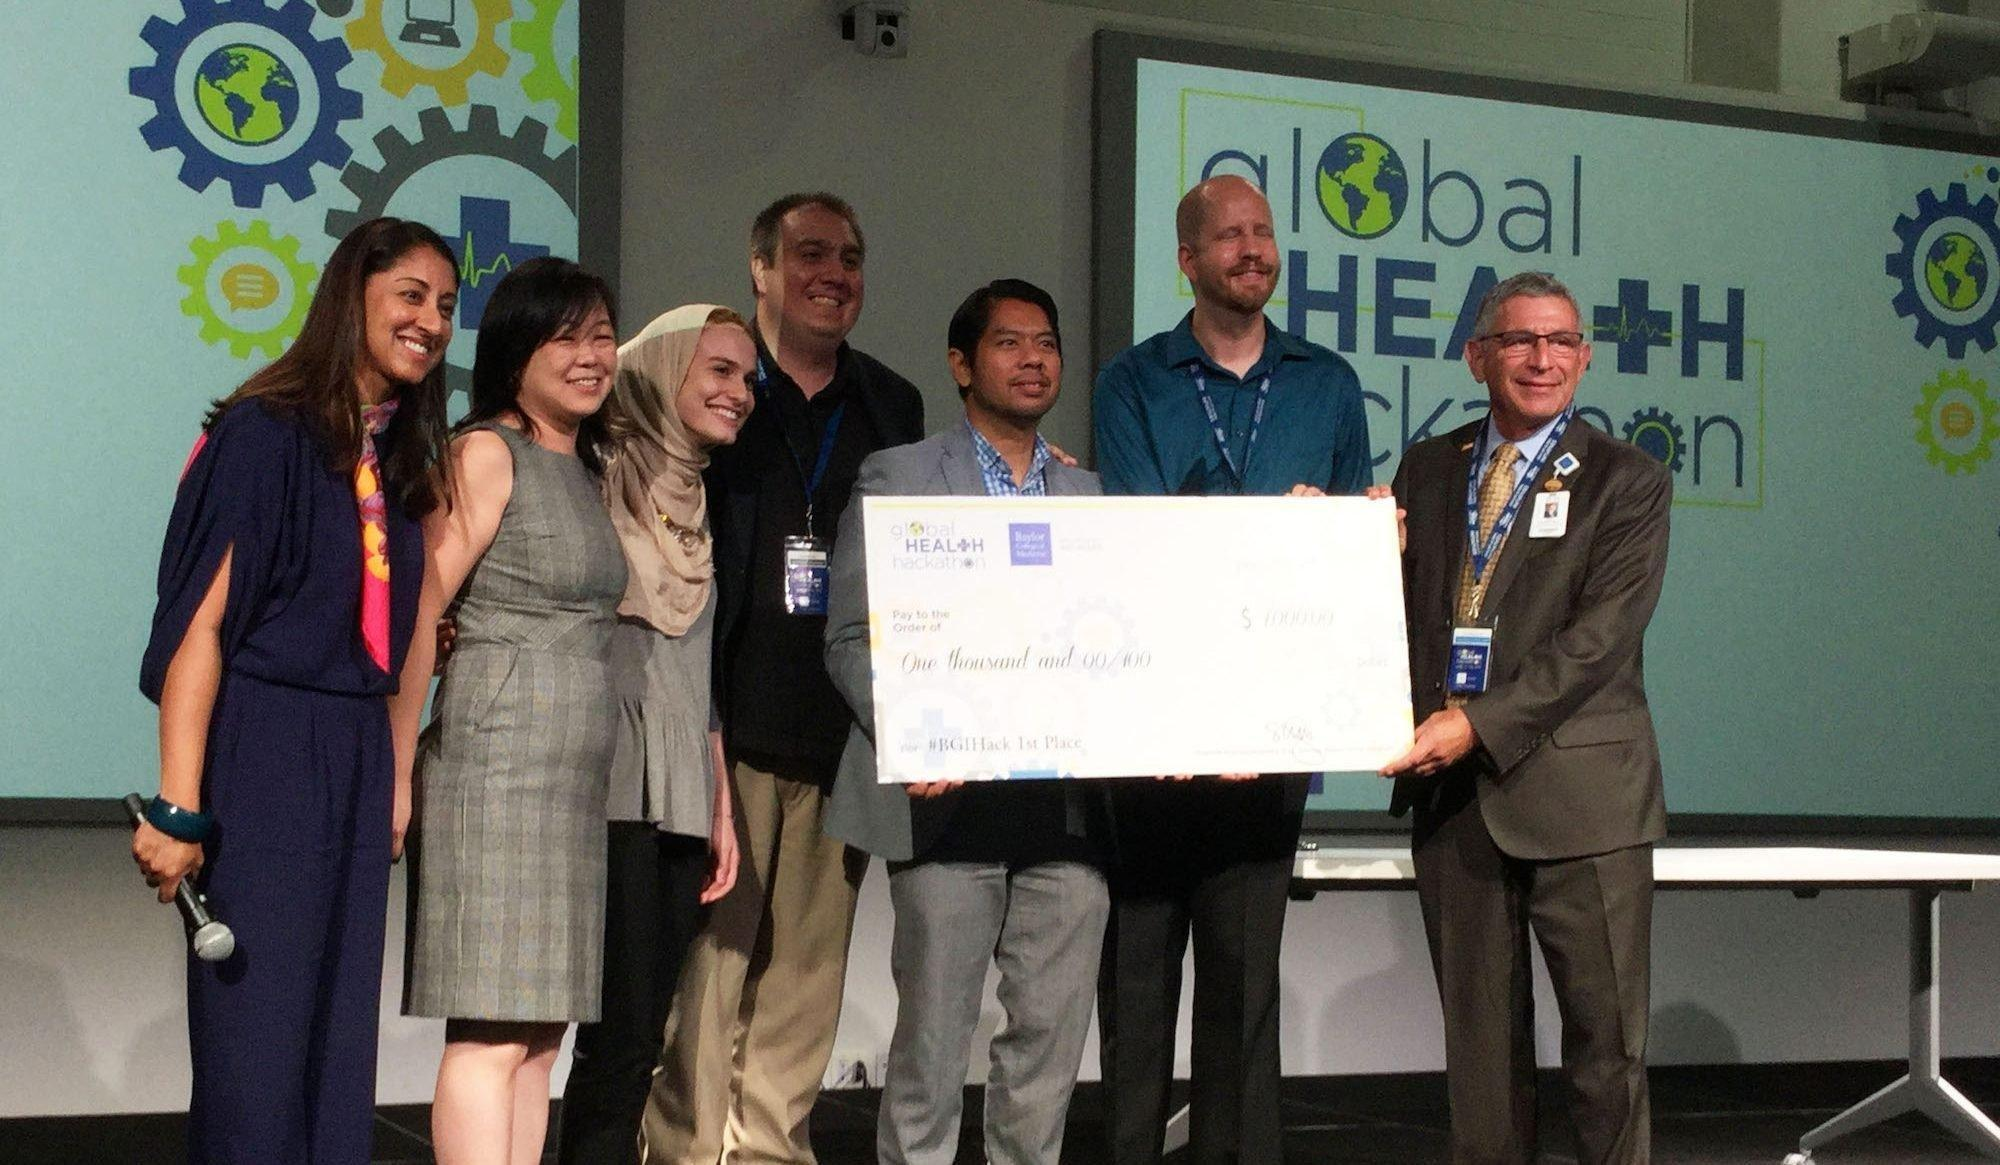 Oxygen Backpack Wins Top Prize At Global Health Hackathon